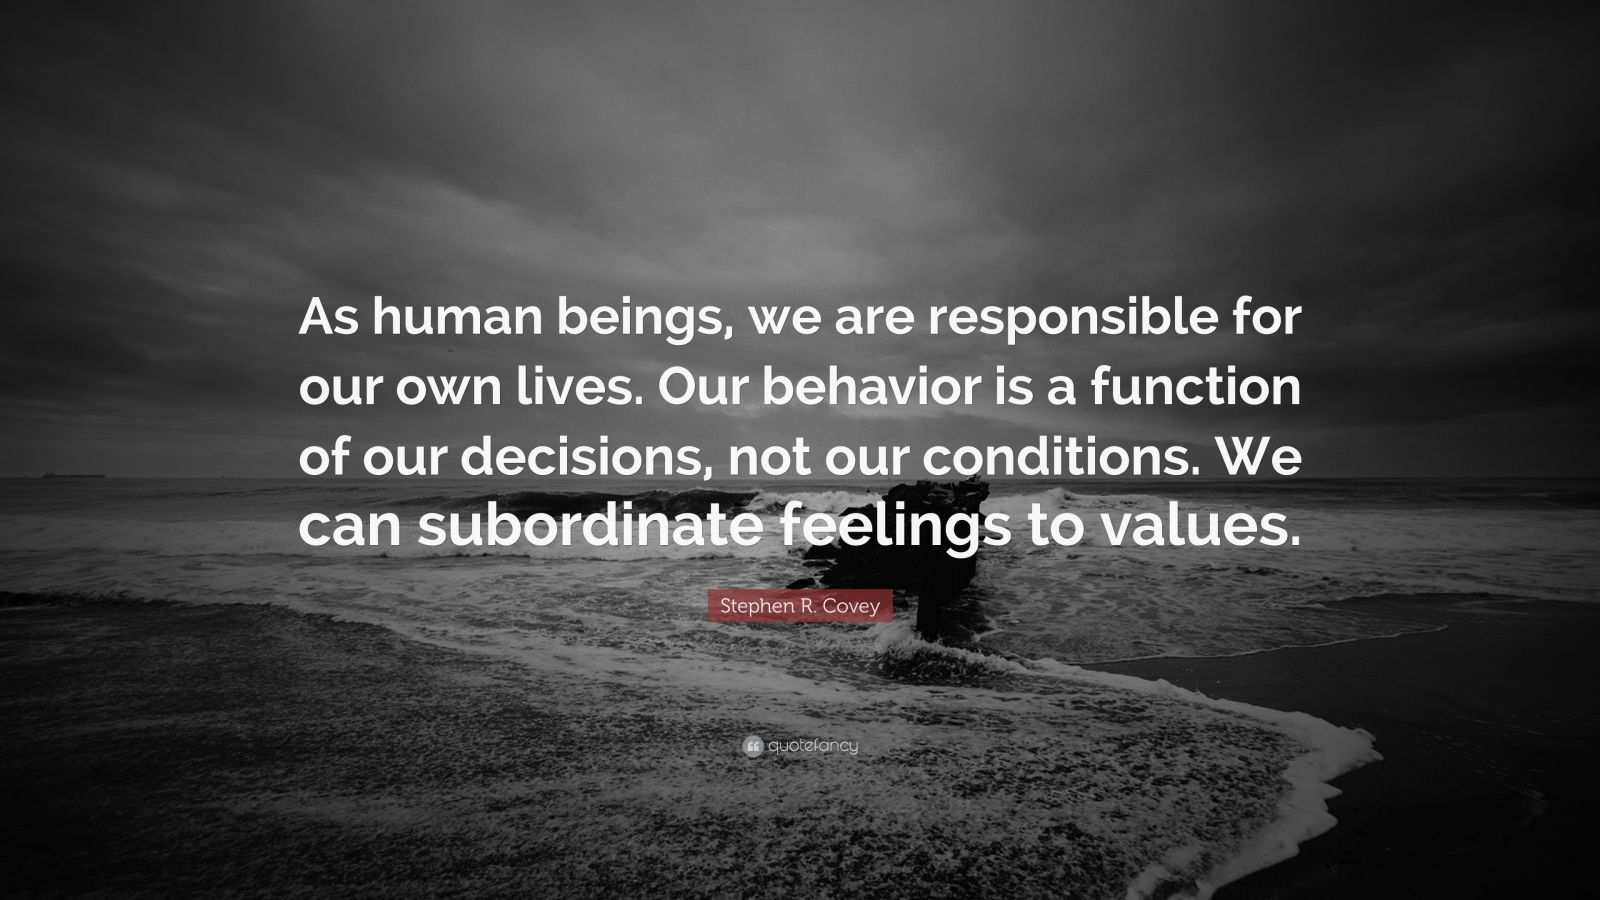 "Stephen R. Covey Quote: ""As human beings, we are responsible for our own lives. Our behavior is a function of our decisions, not our conditions. We can subordinate feelings to values."""